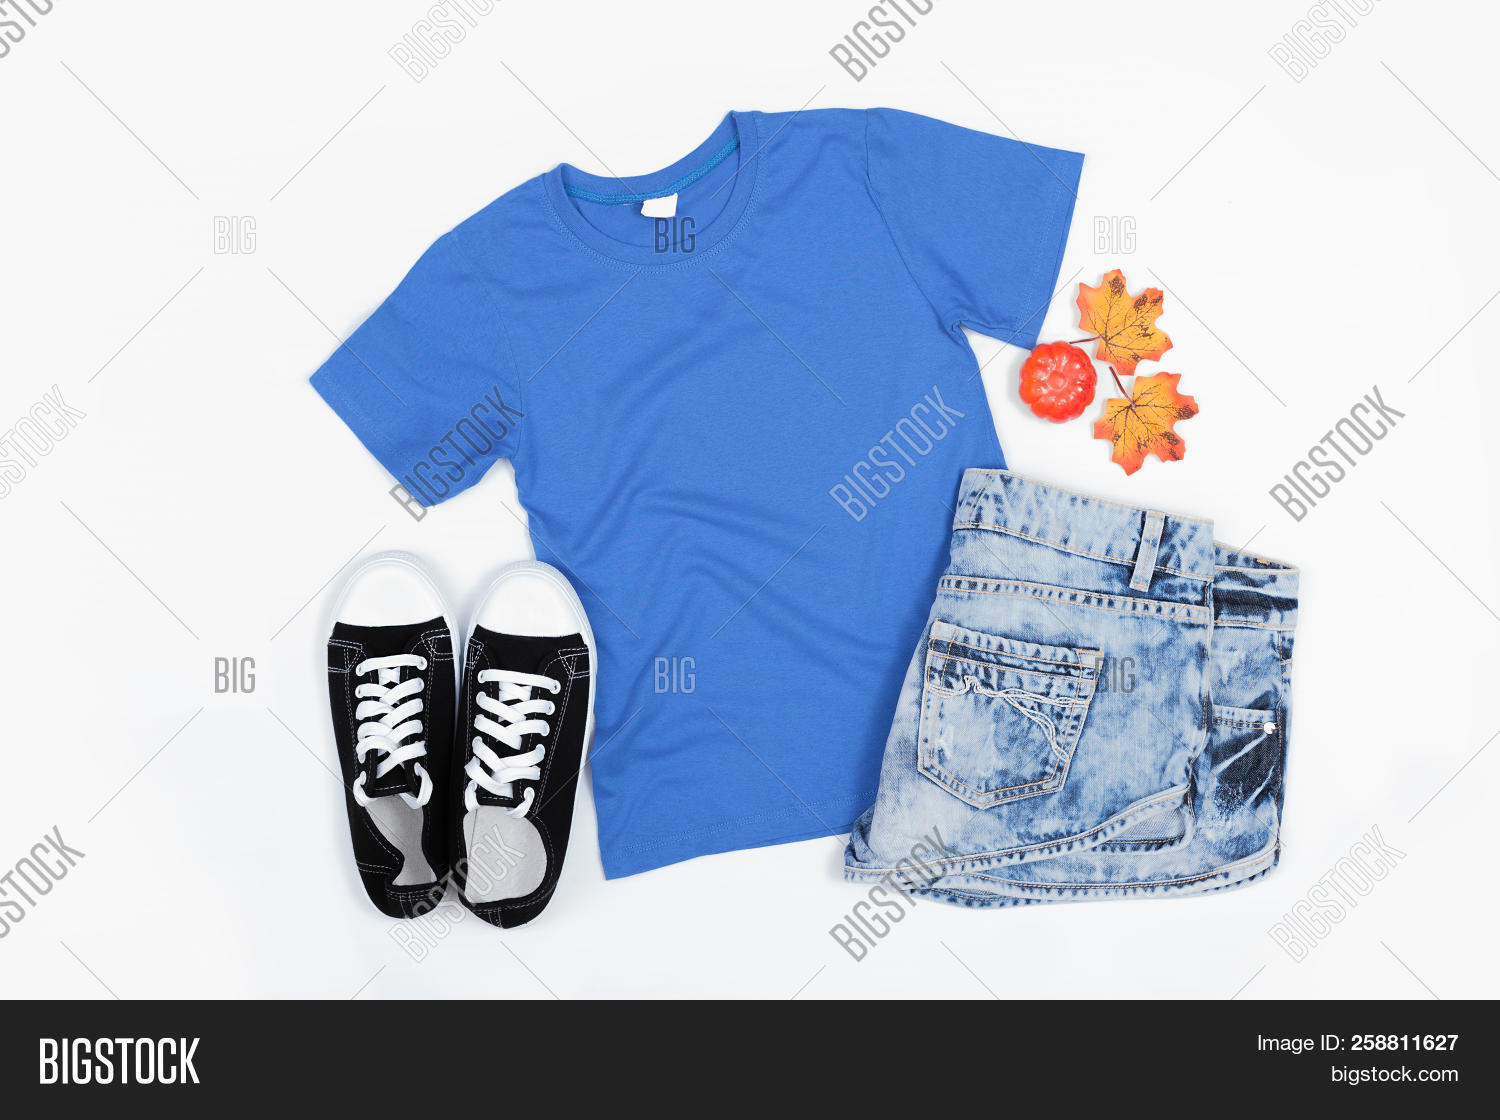 Blue Short Sleeve T Image Photo Free Trial Bigstock